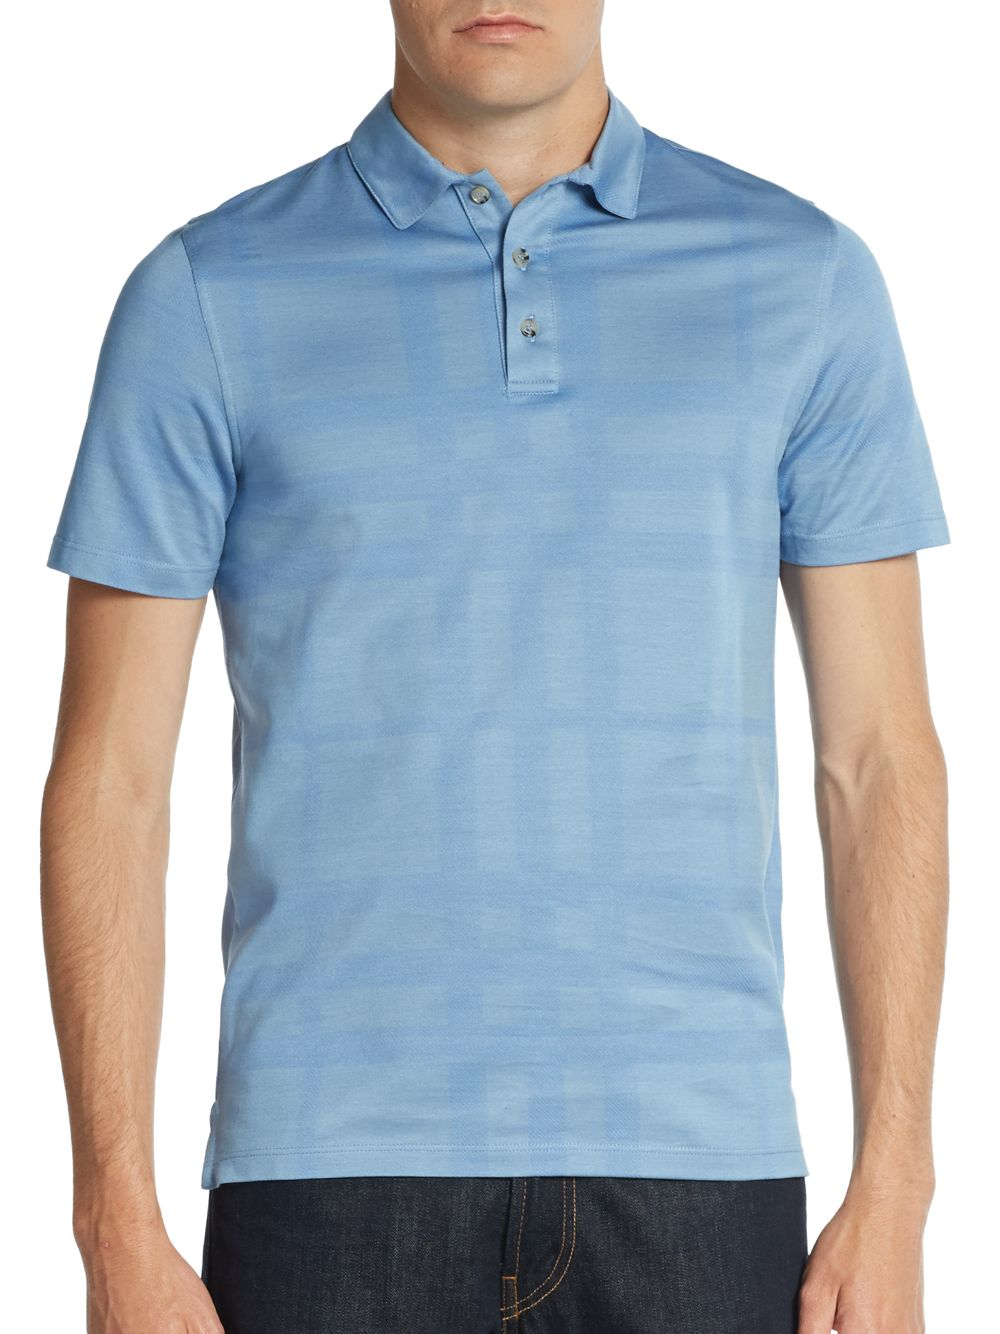 737af9fc9 Burberry Auden Check Cotton Polo Shirt in Blue for Men - Lyst